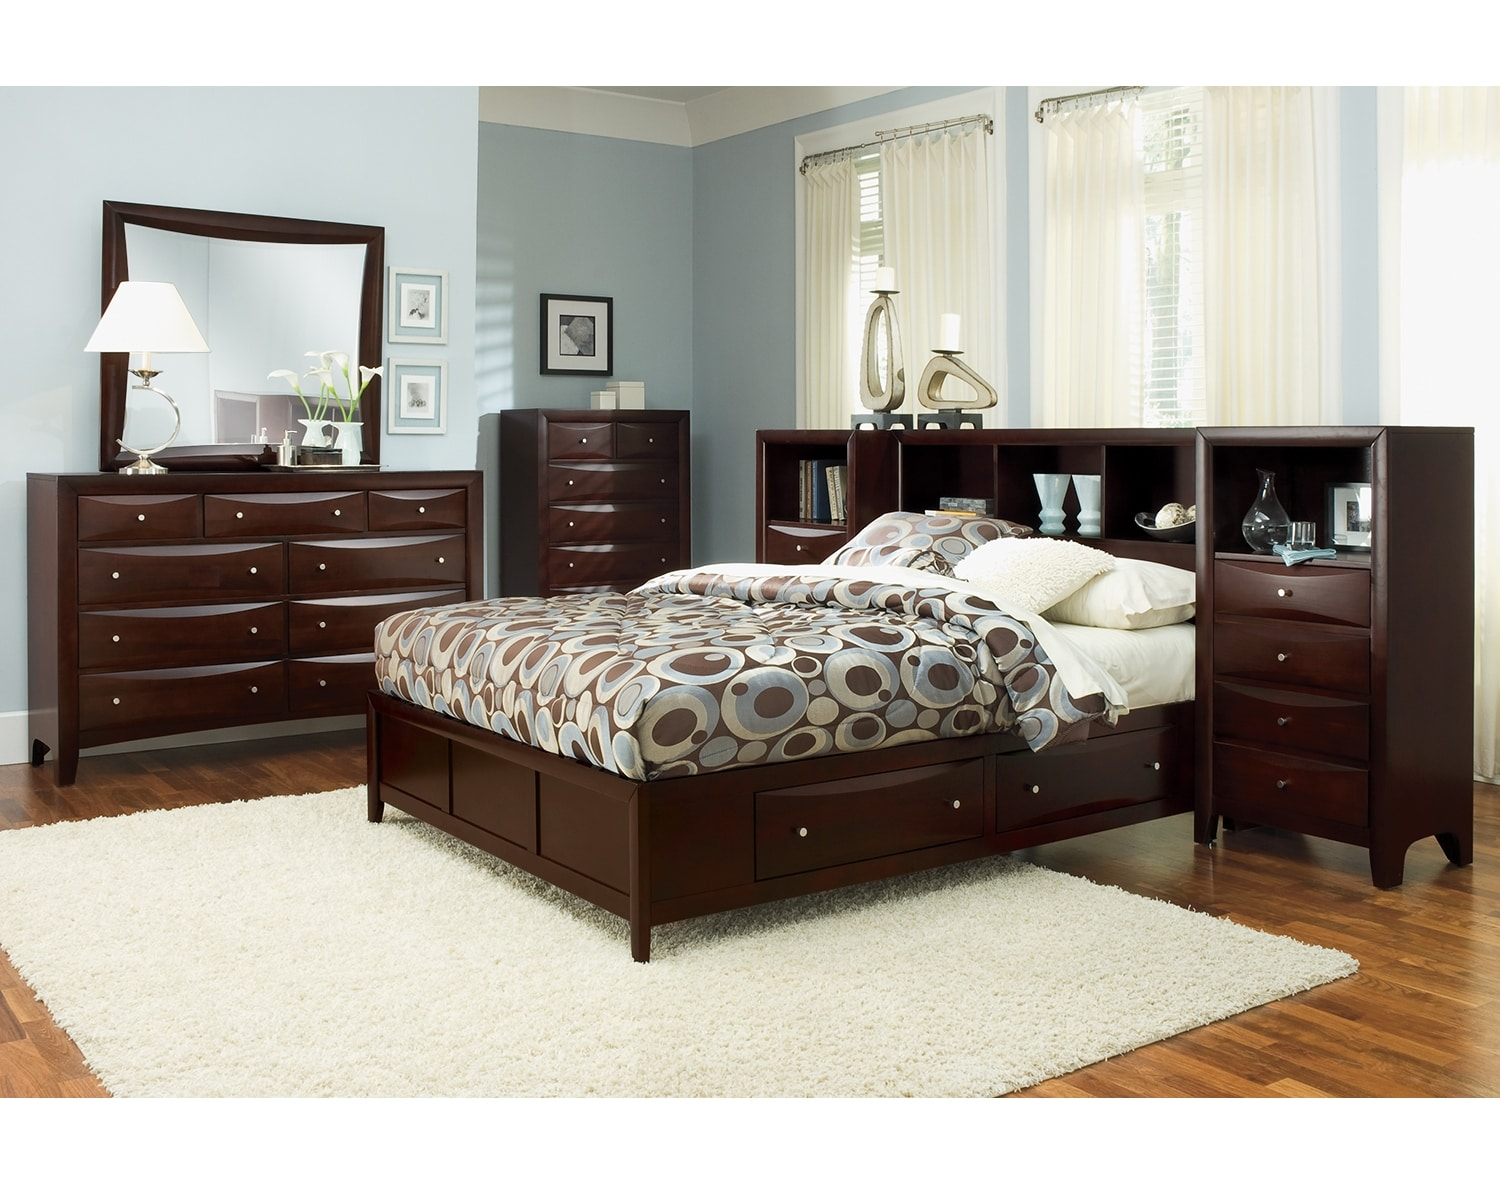 Bedroom Furniture - The Kensington Collection - Queen Wall Bed with Piers